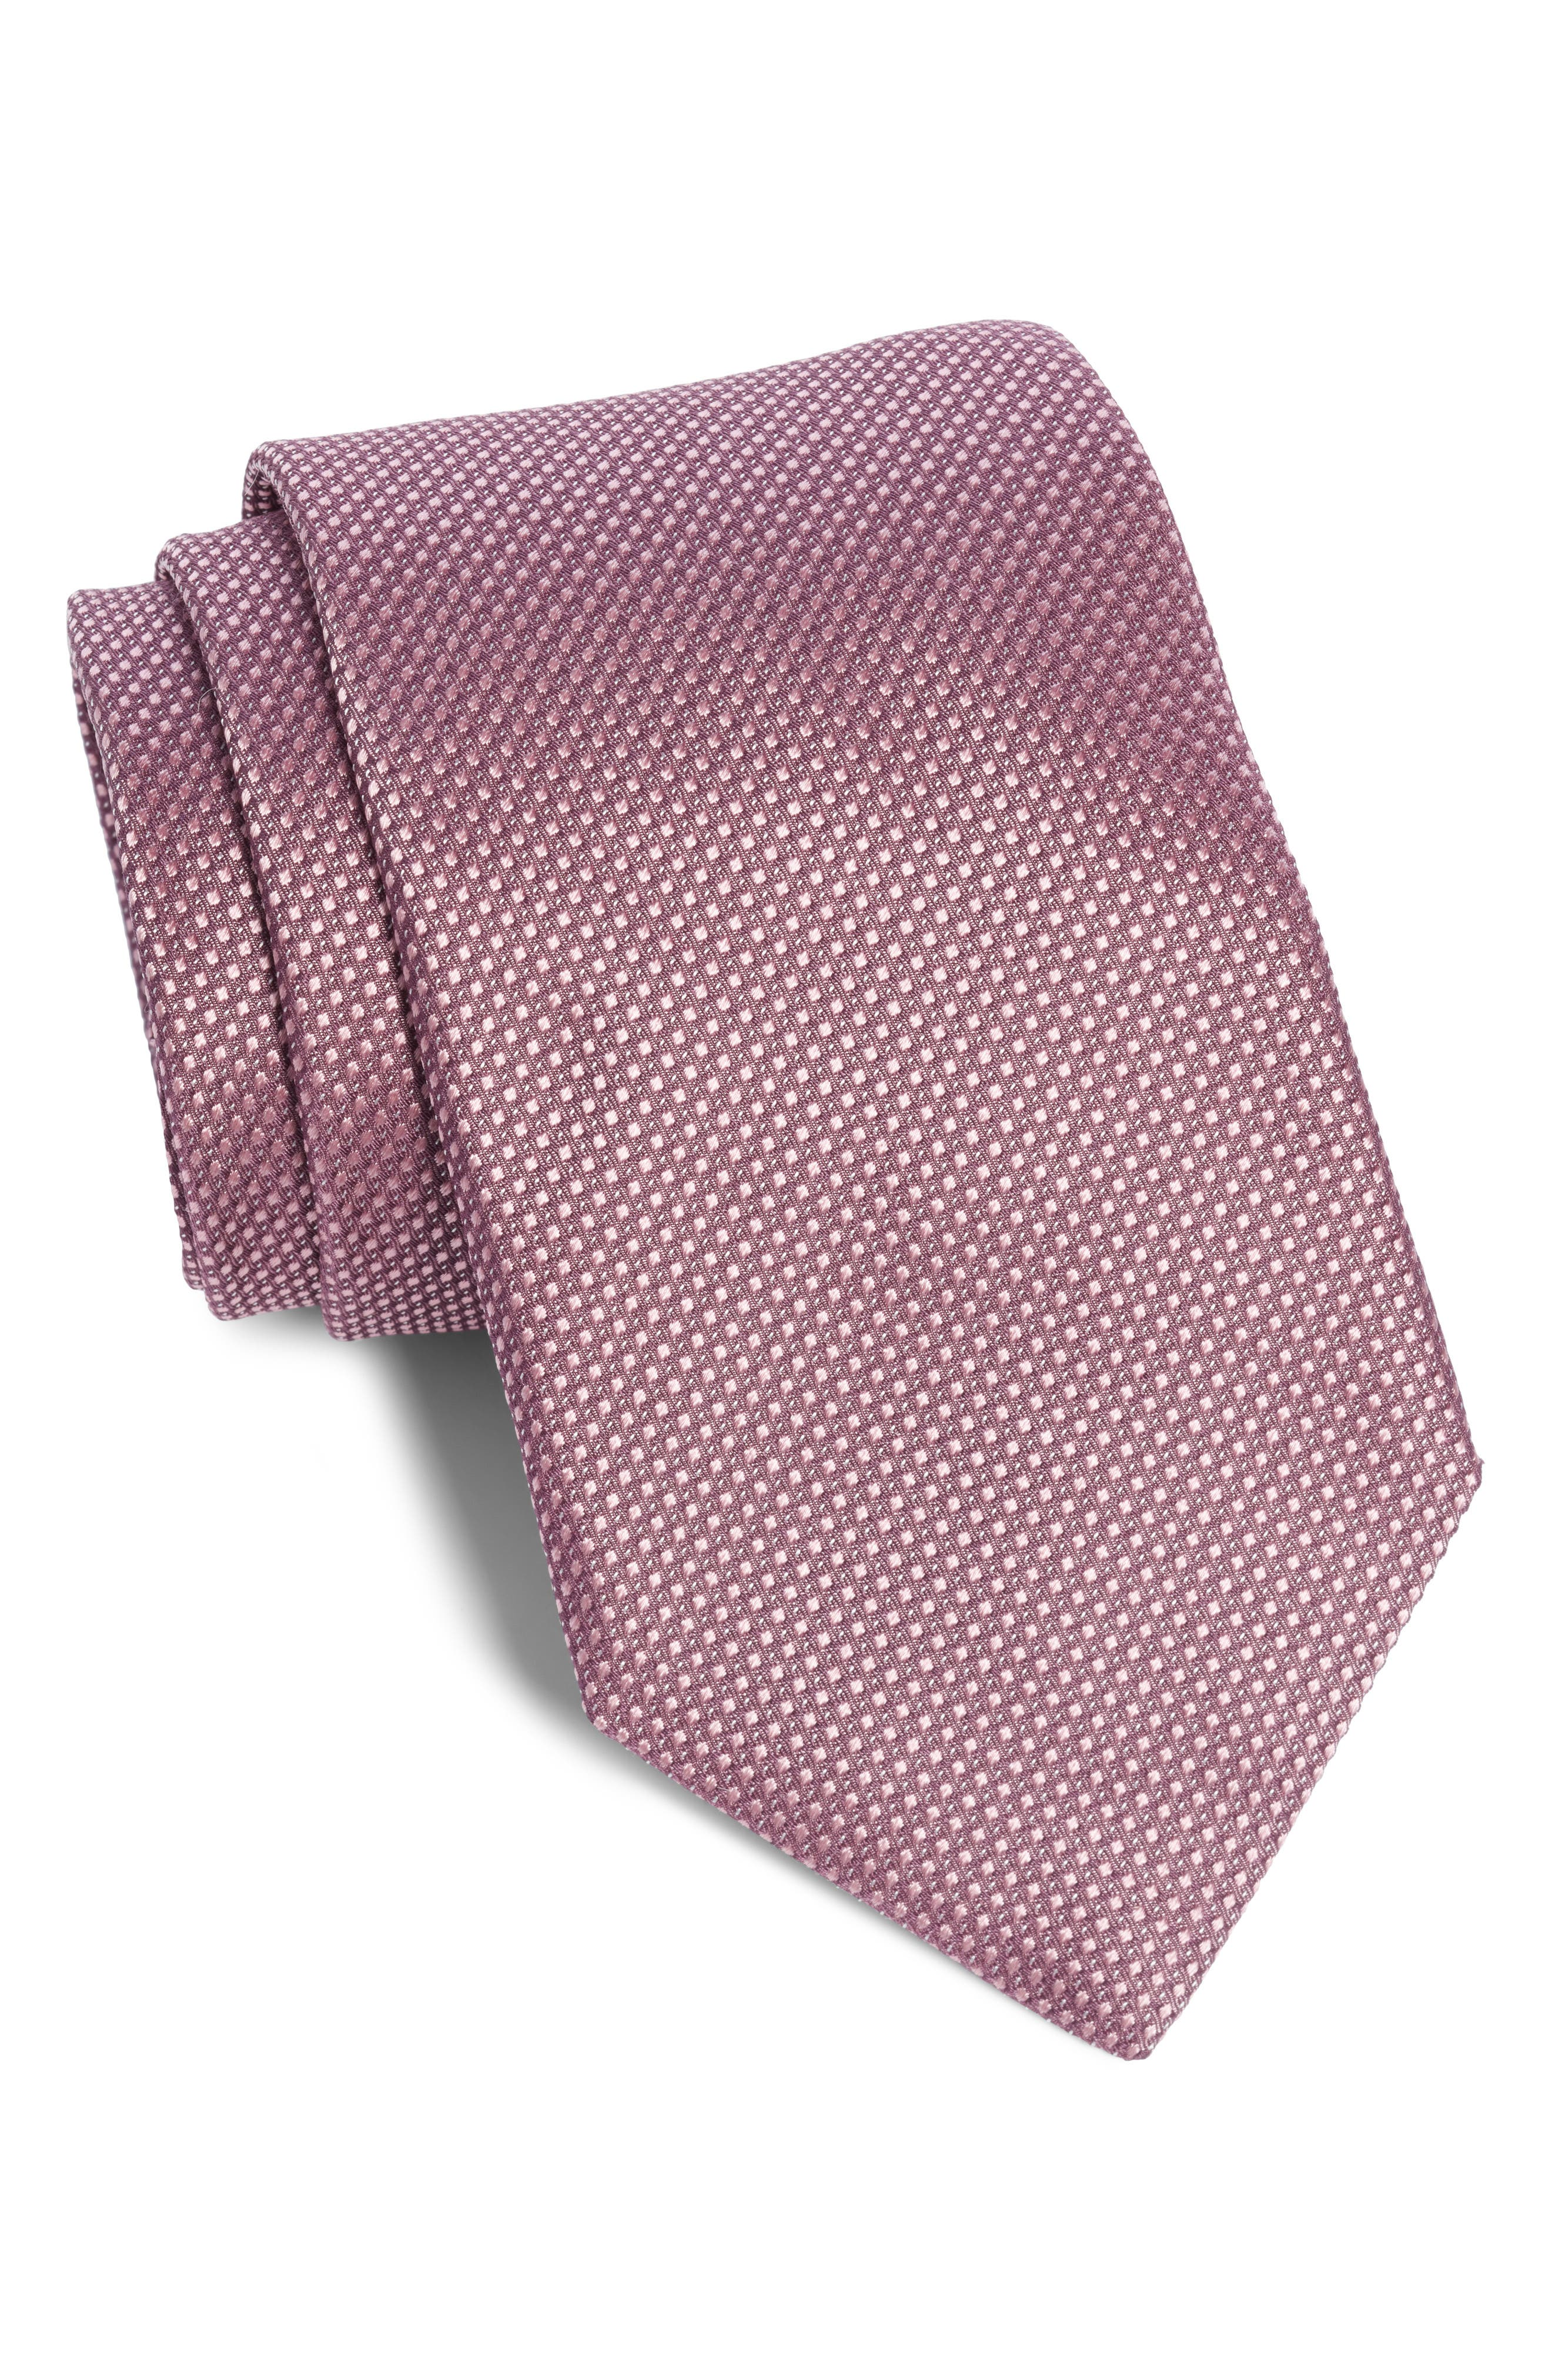 Solid Silk Tie,                             Main thumbnail 1, color,                             680